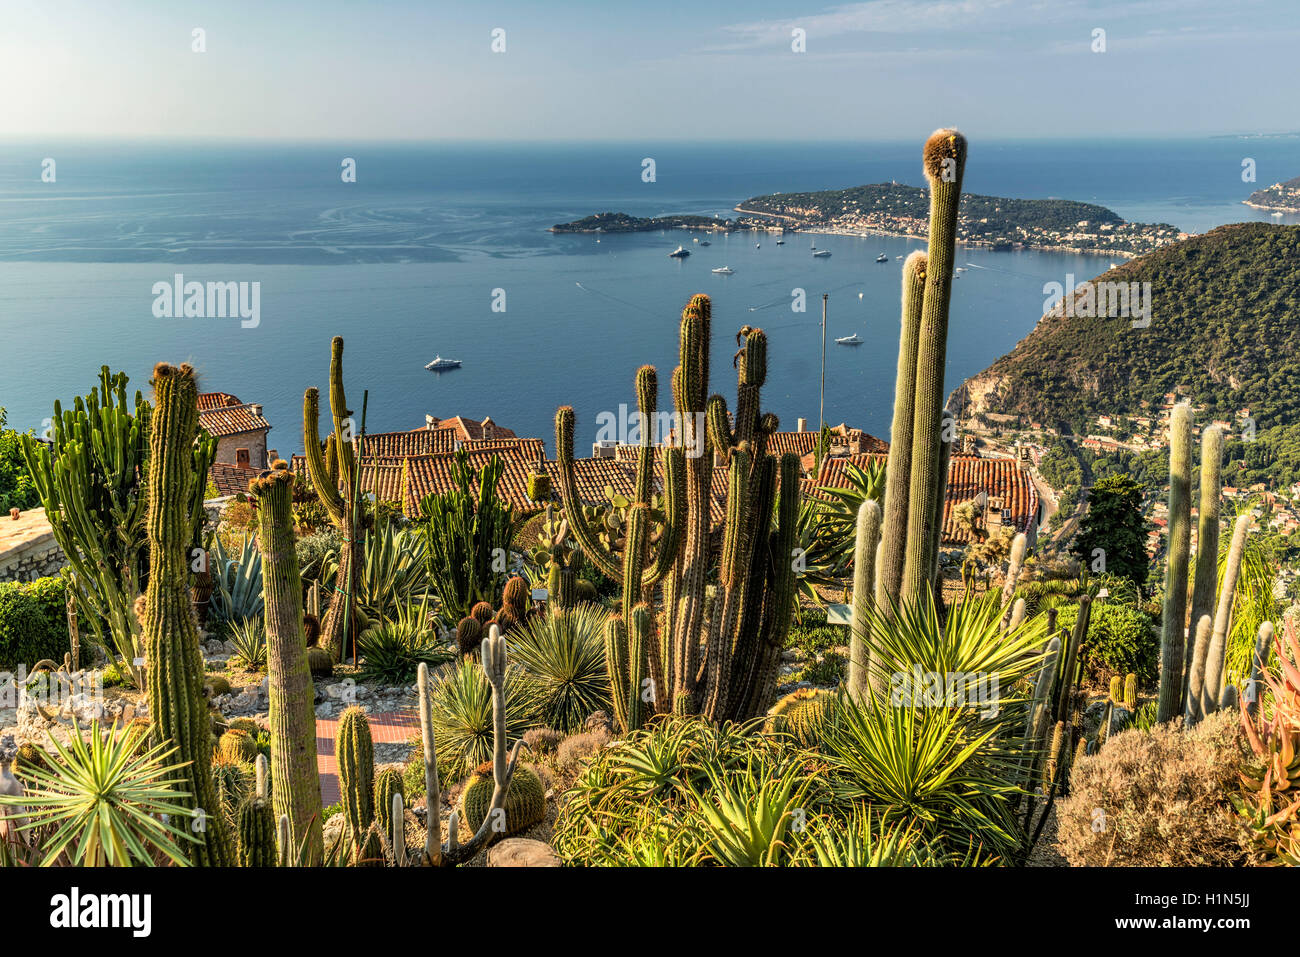 Jardin exotique cacti eze village eze provence alpes cote stock photo royalty free image - Jardin exotique d eze mulhouse ...